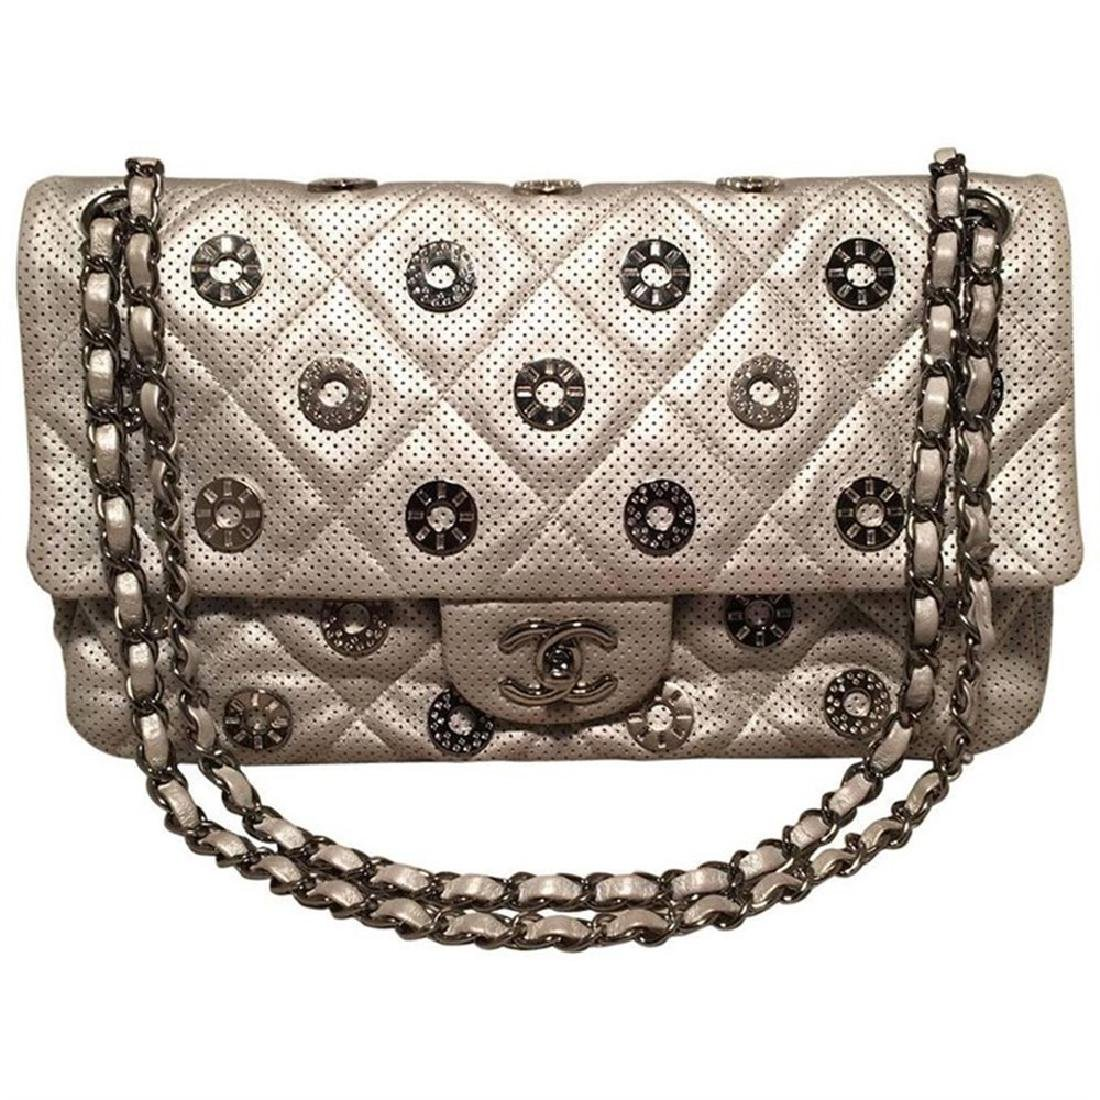 Chanel Silver Perforated Leather Classic Flap with